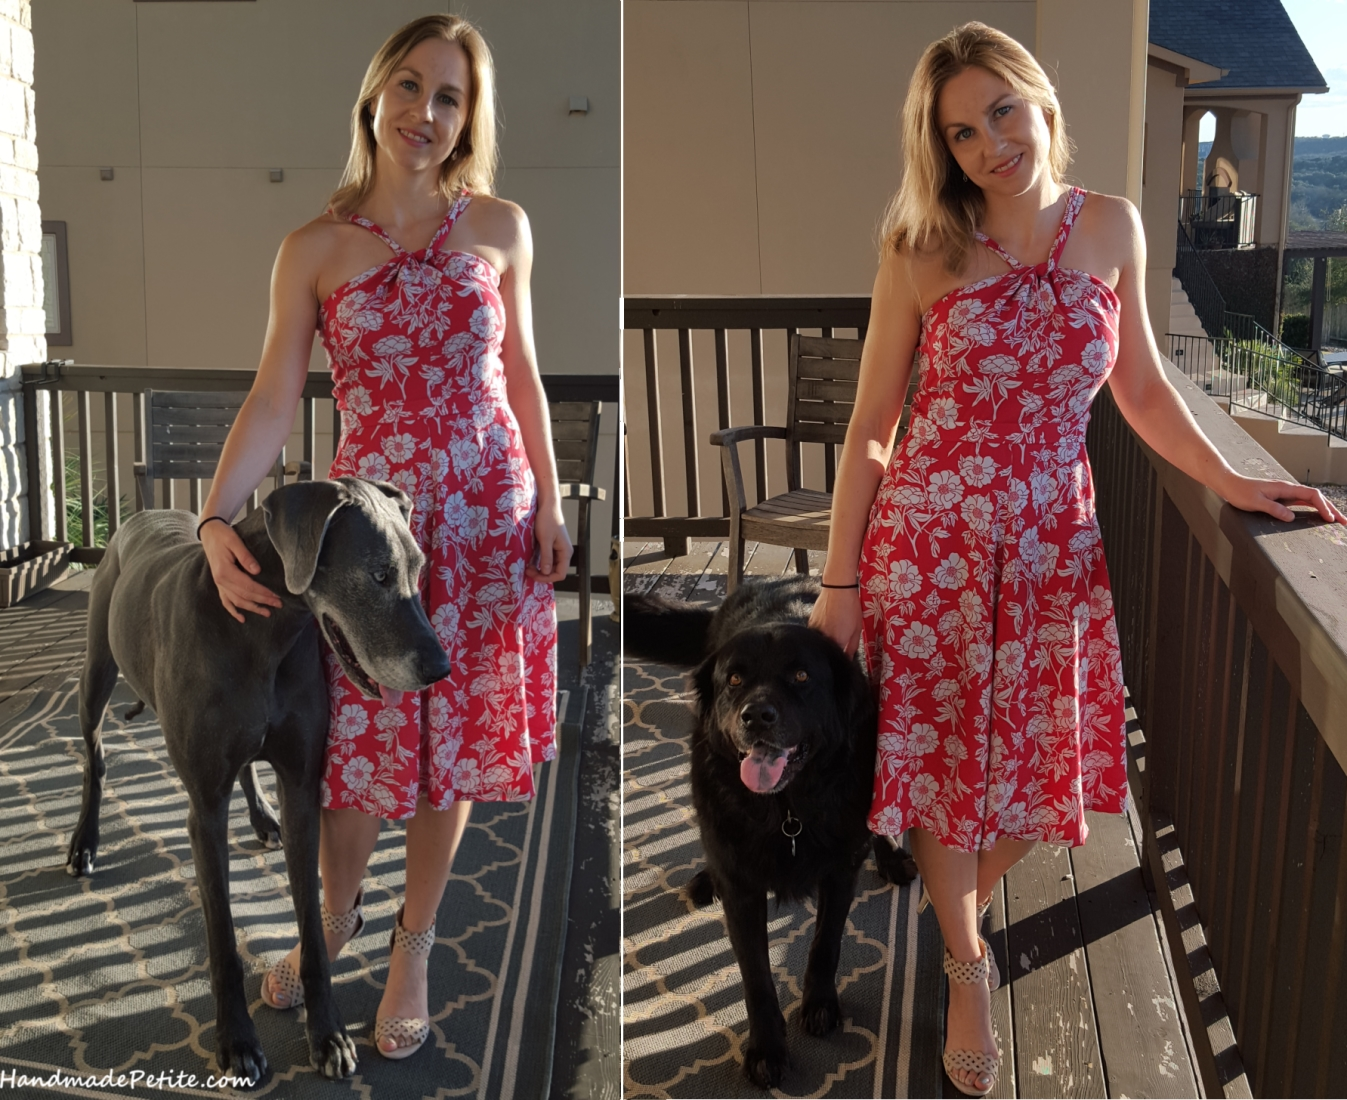 Handmade summer dress posing with my dogs